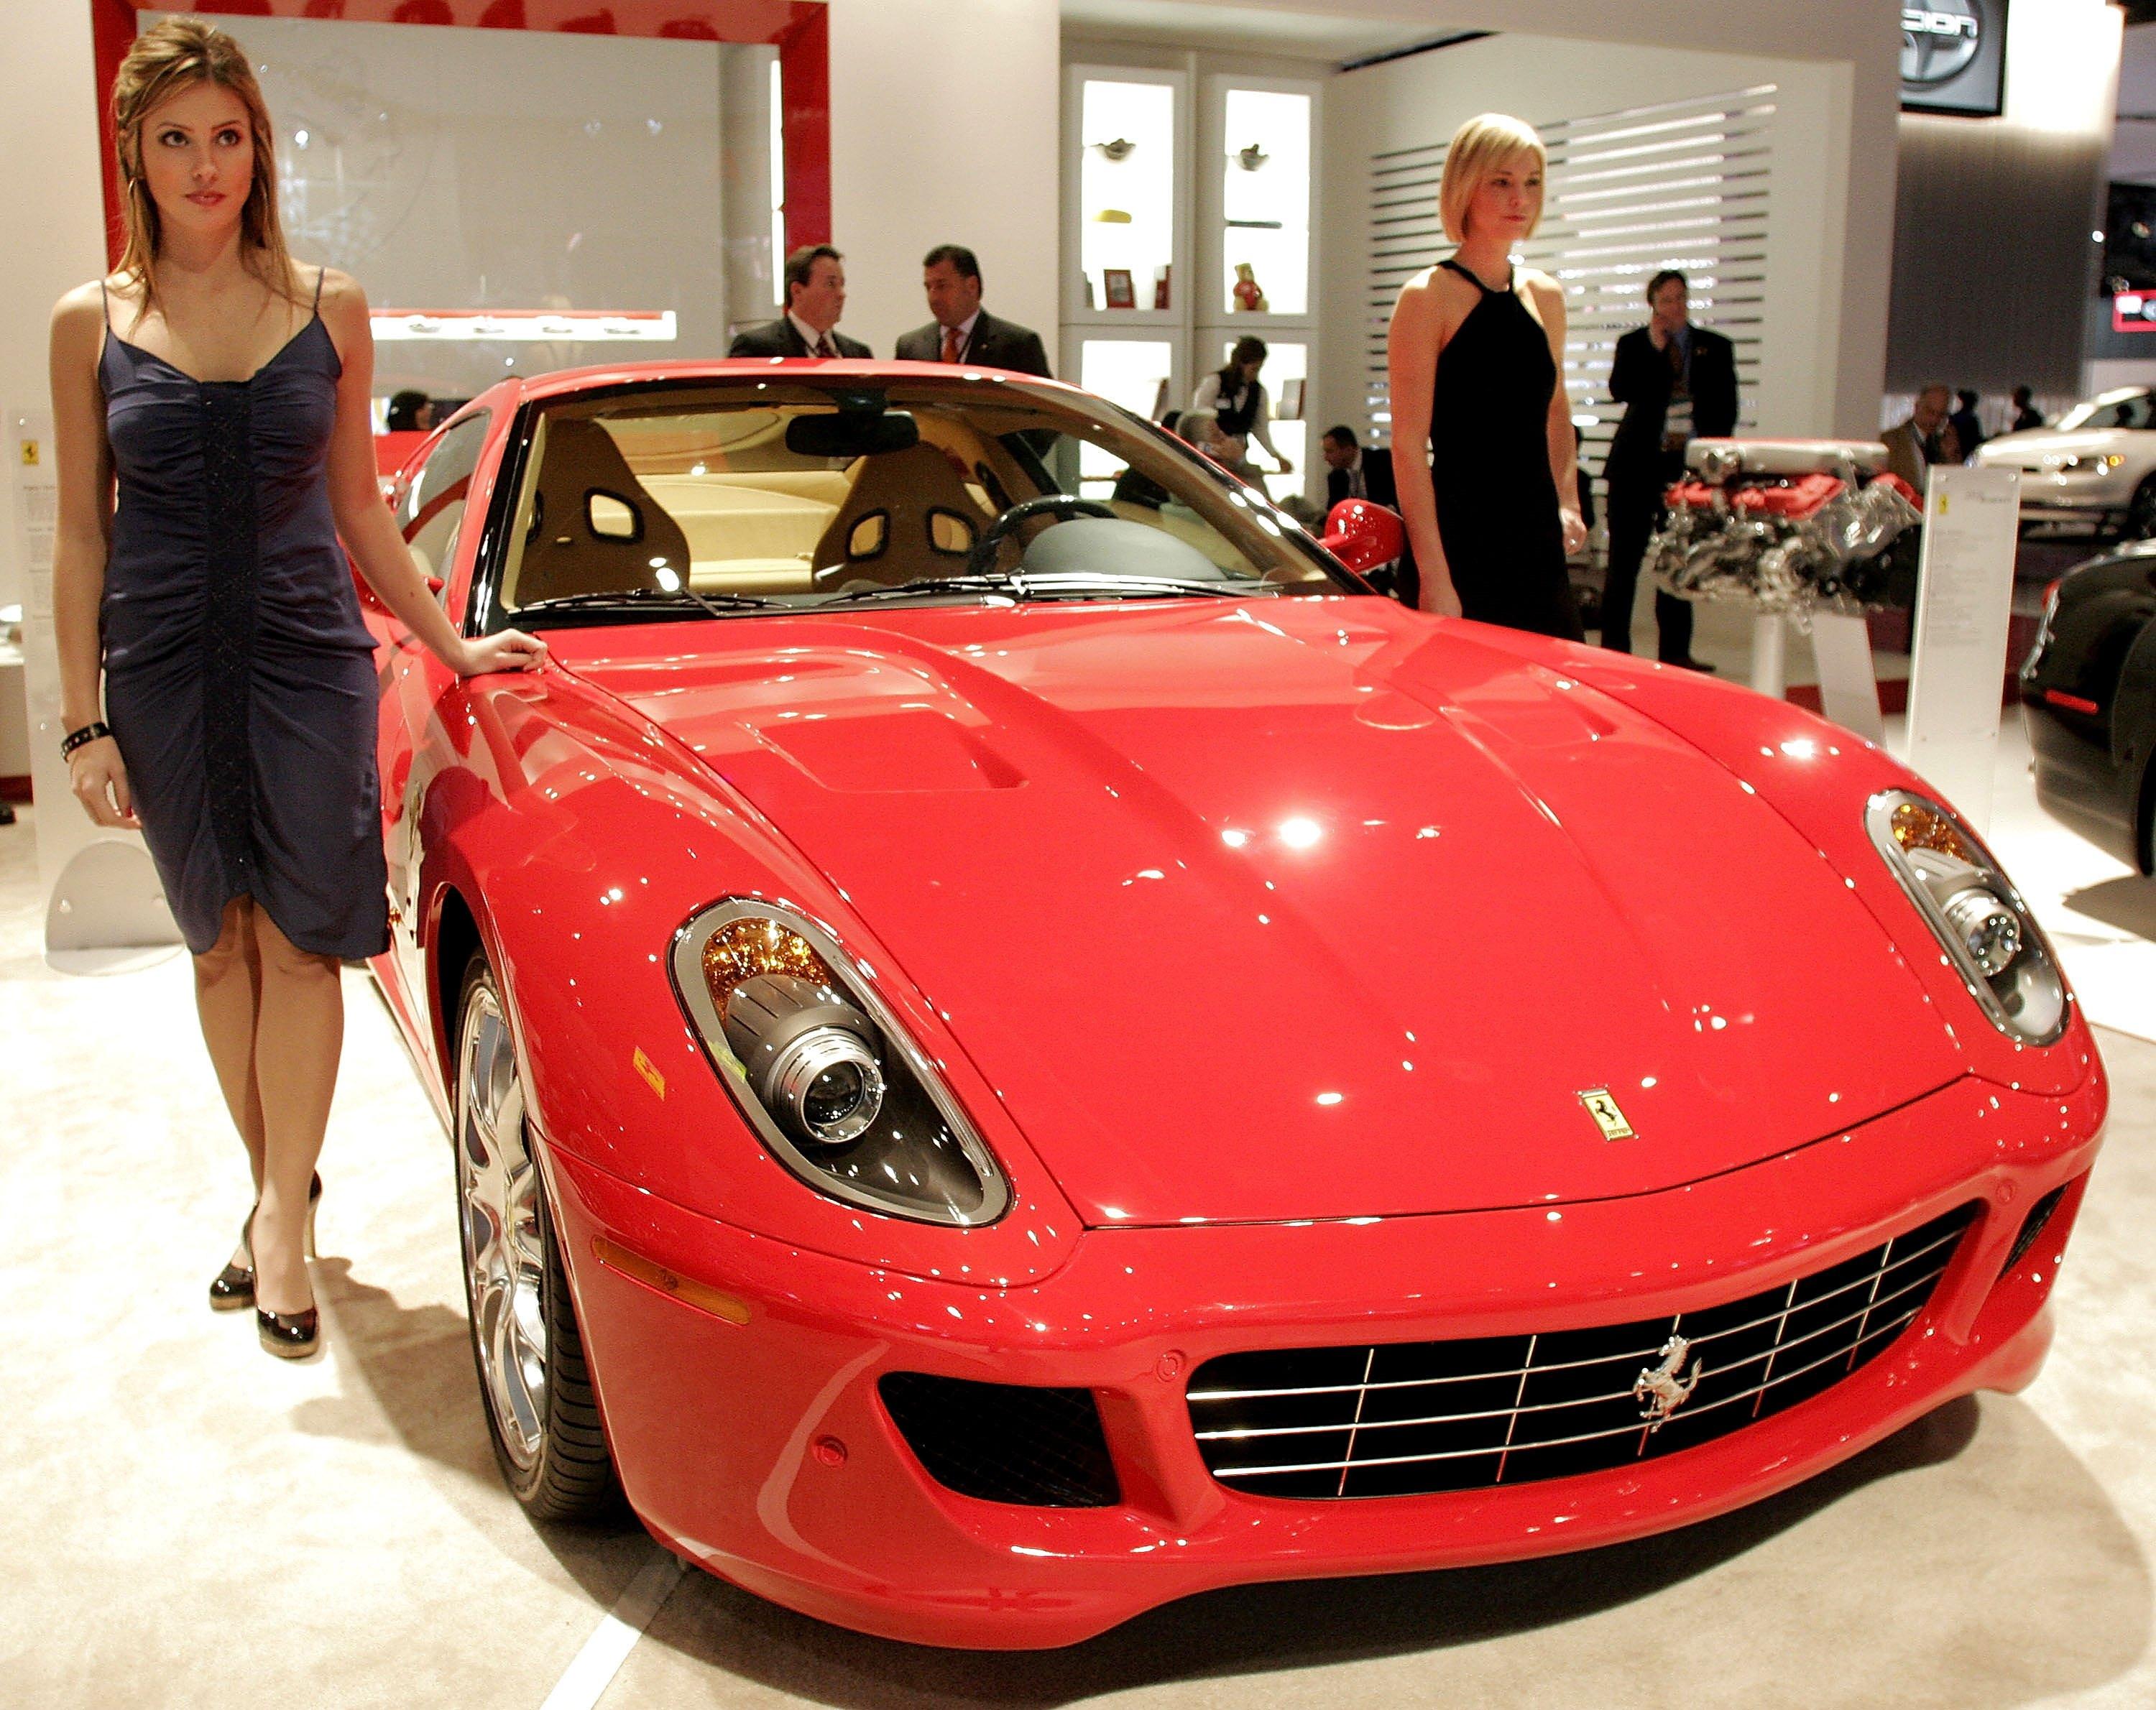 ferrari 599 gtb fiorano on ebay costs as much as two ferrari 812 superfast. Black Bedroom Furniture Sets. Home Design Ideas